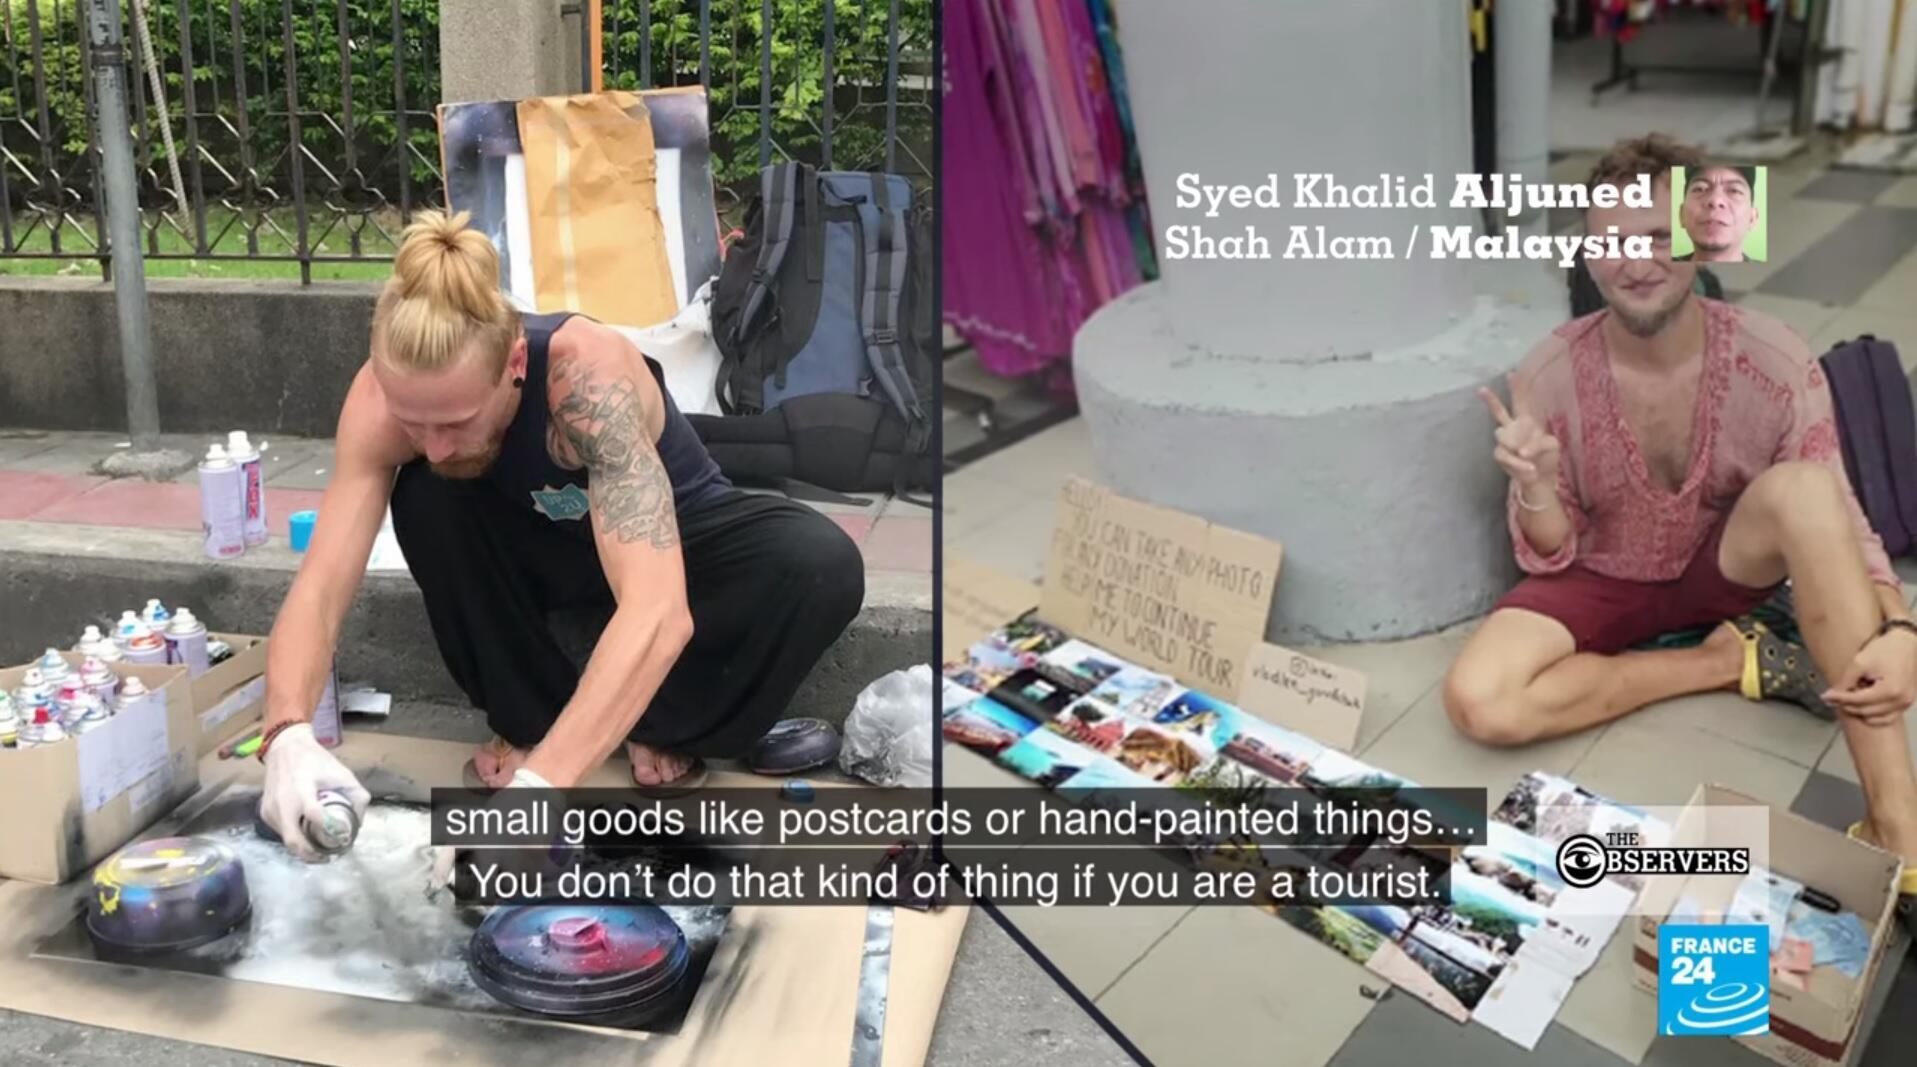 Western tourists in Southeast Asia selling drawings and postcards for small change.